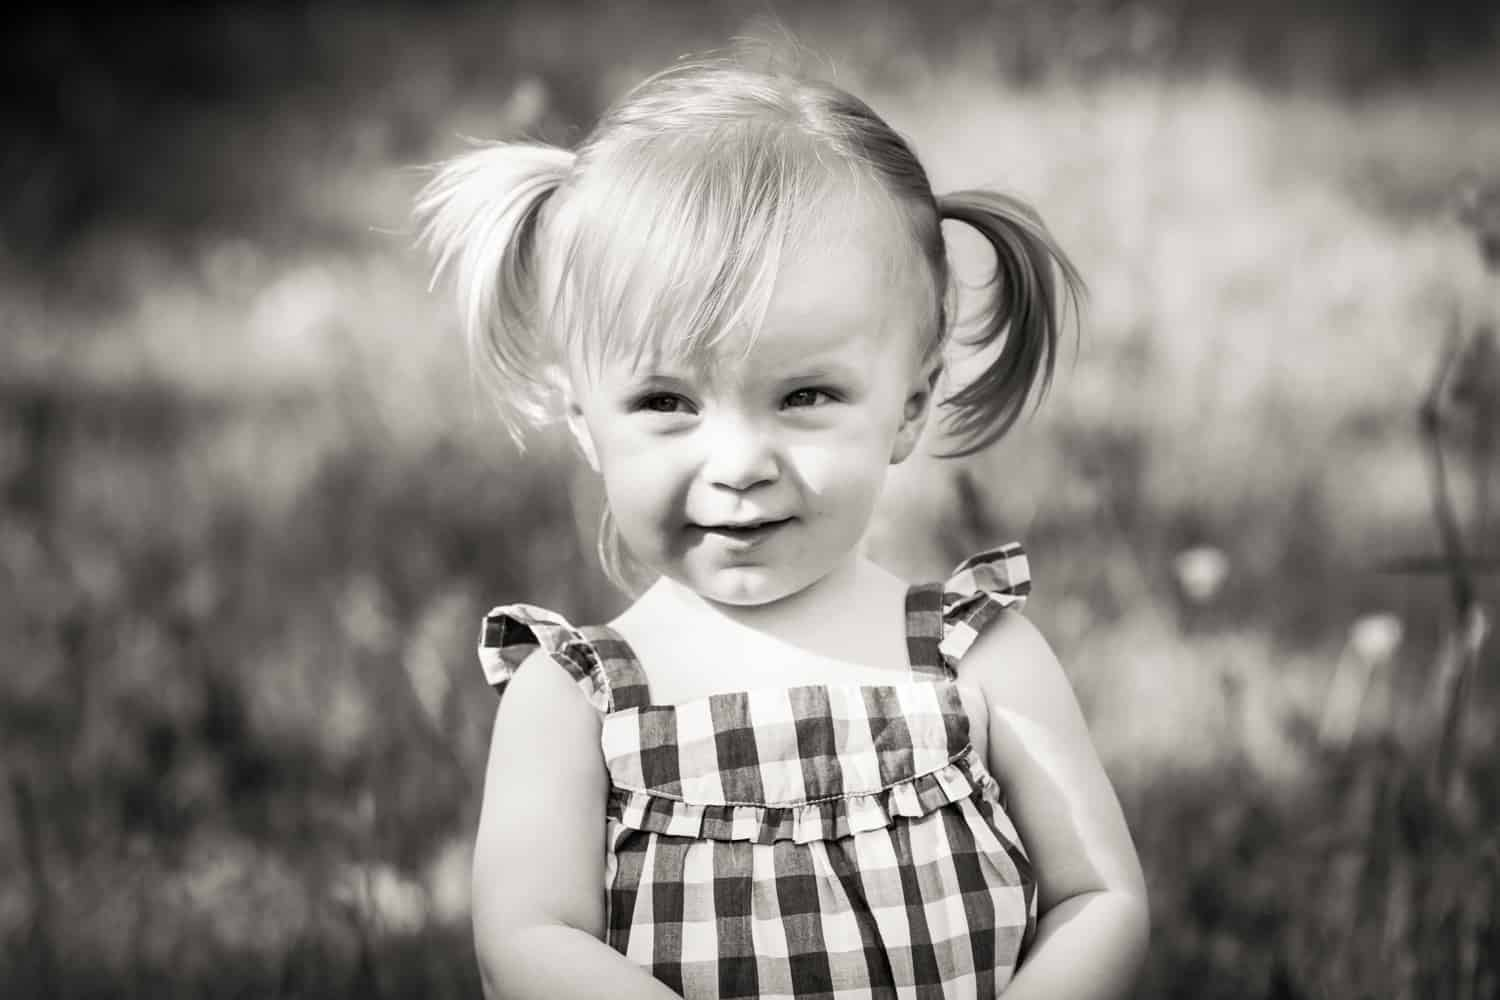 Black and white photo of little girl wearing checked dress